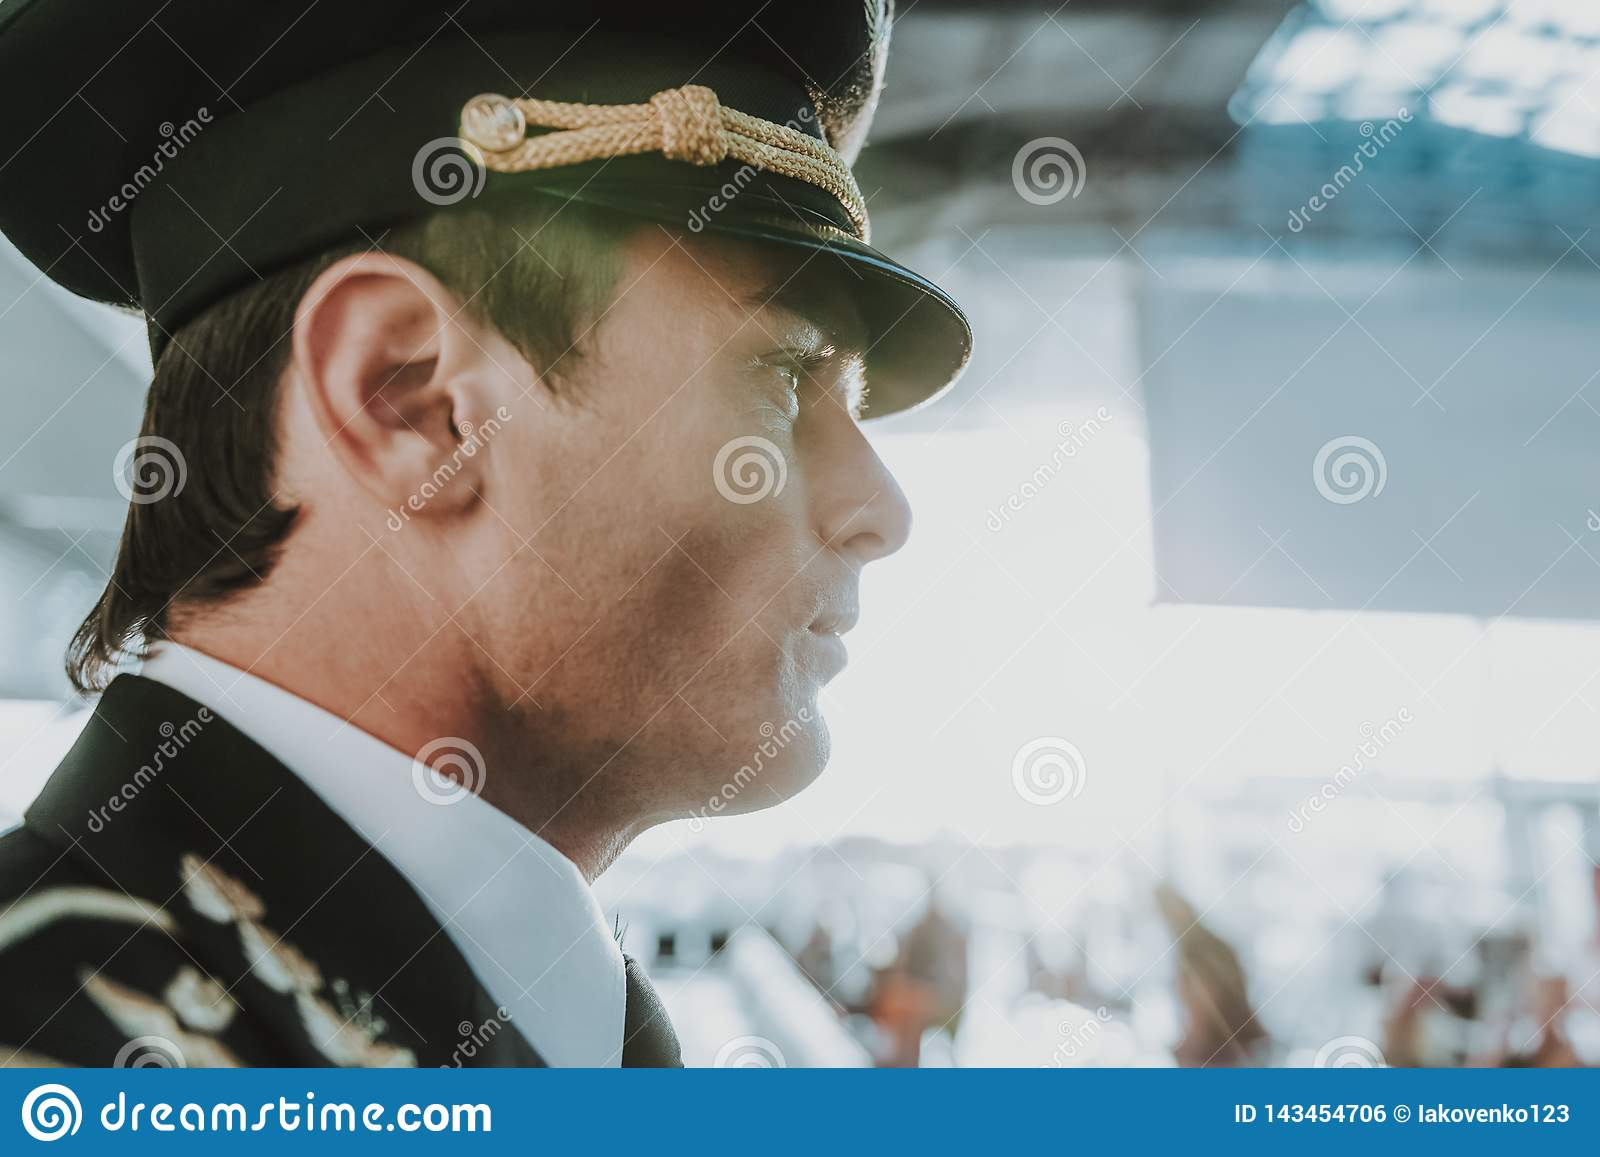 Handsome young pilot standing in the airport